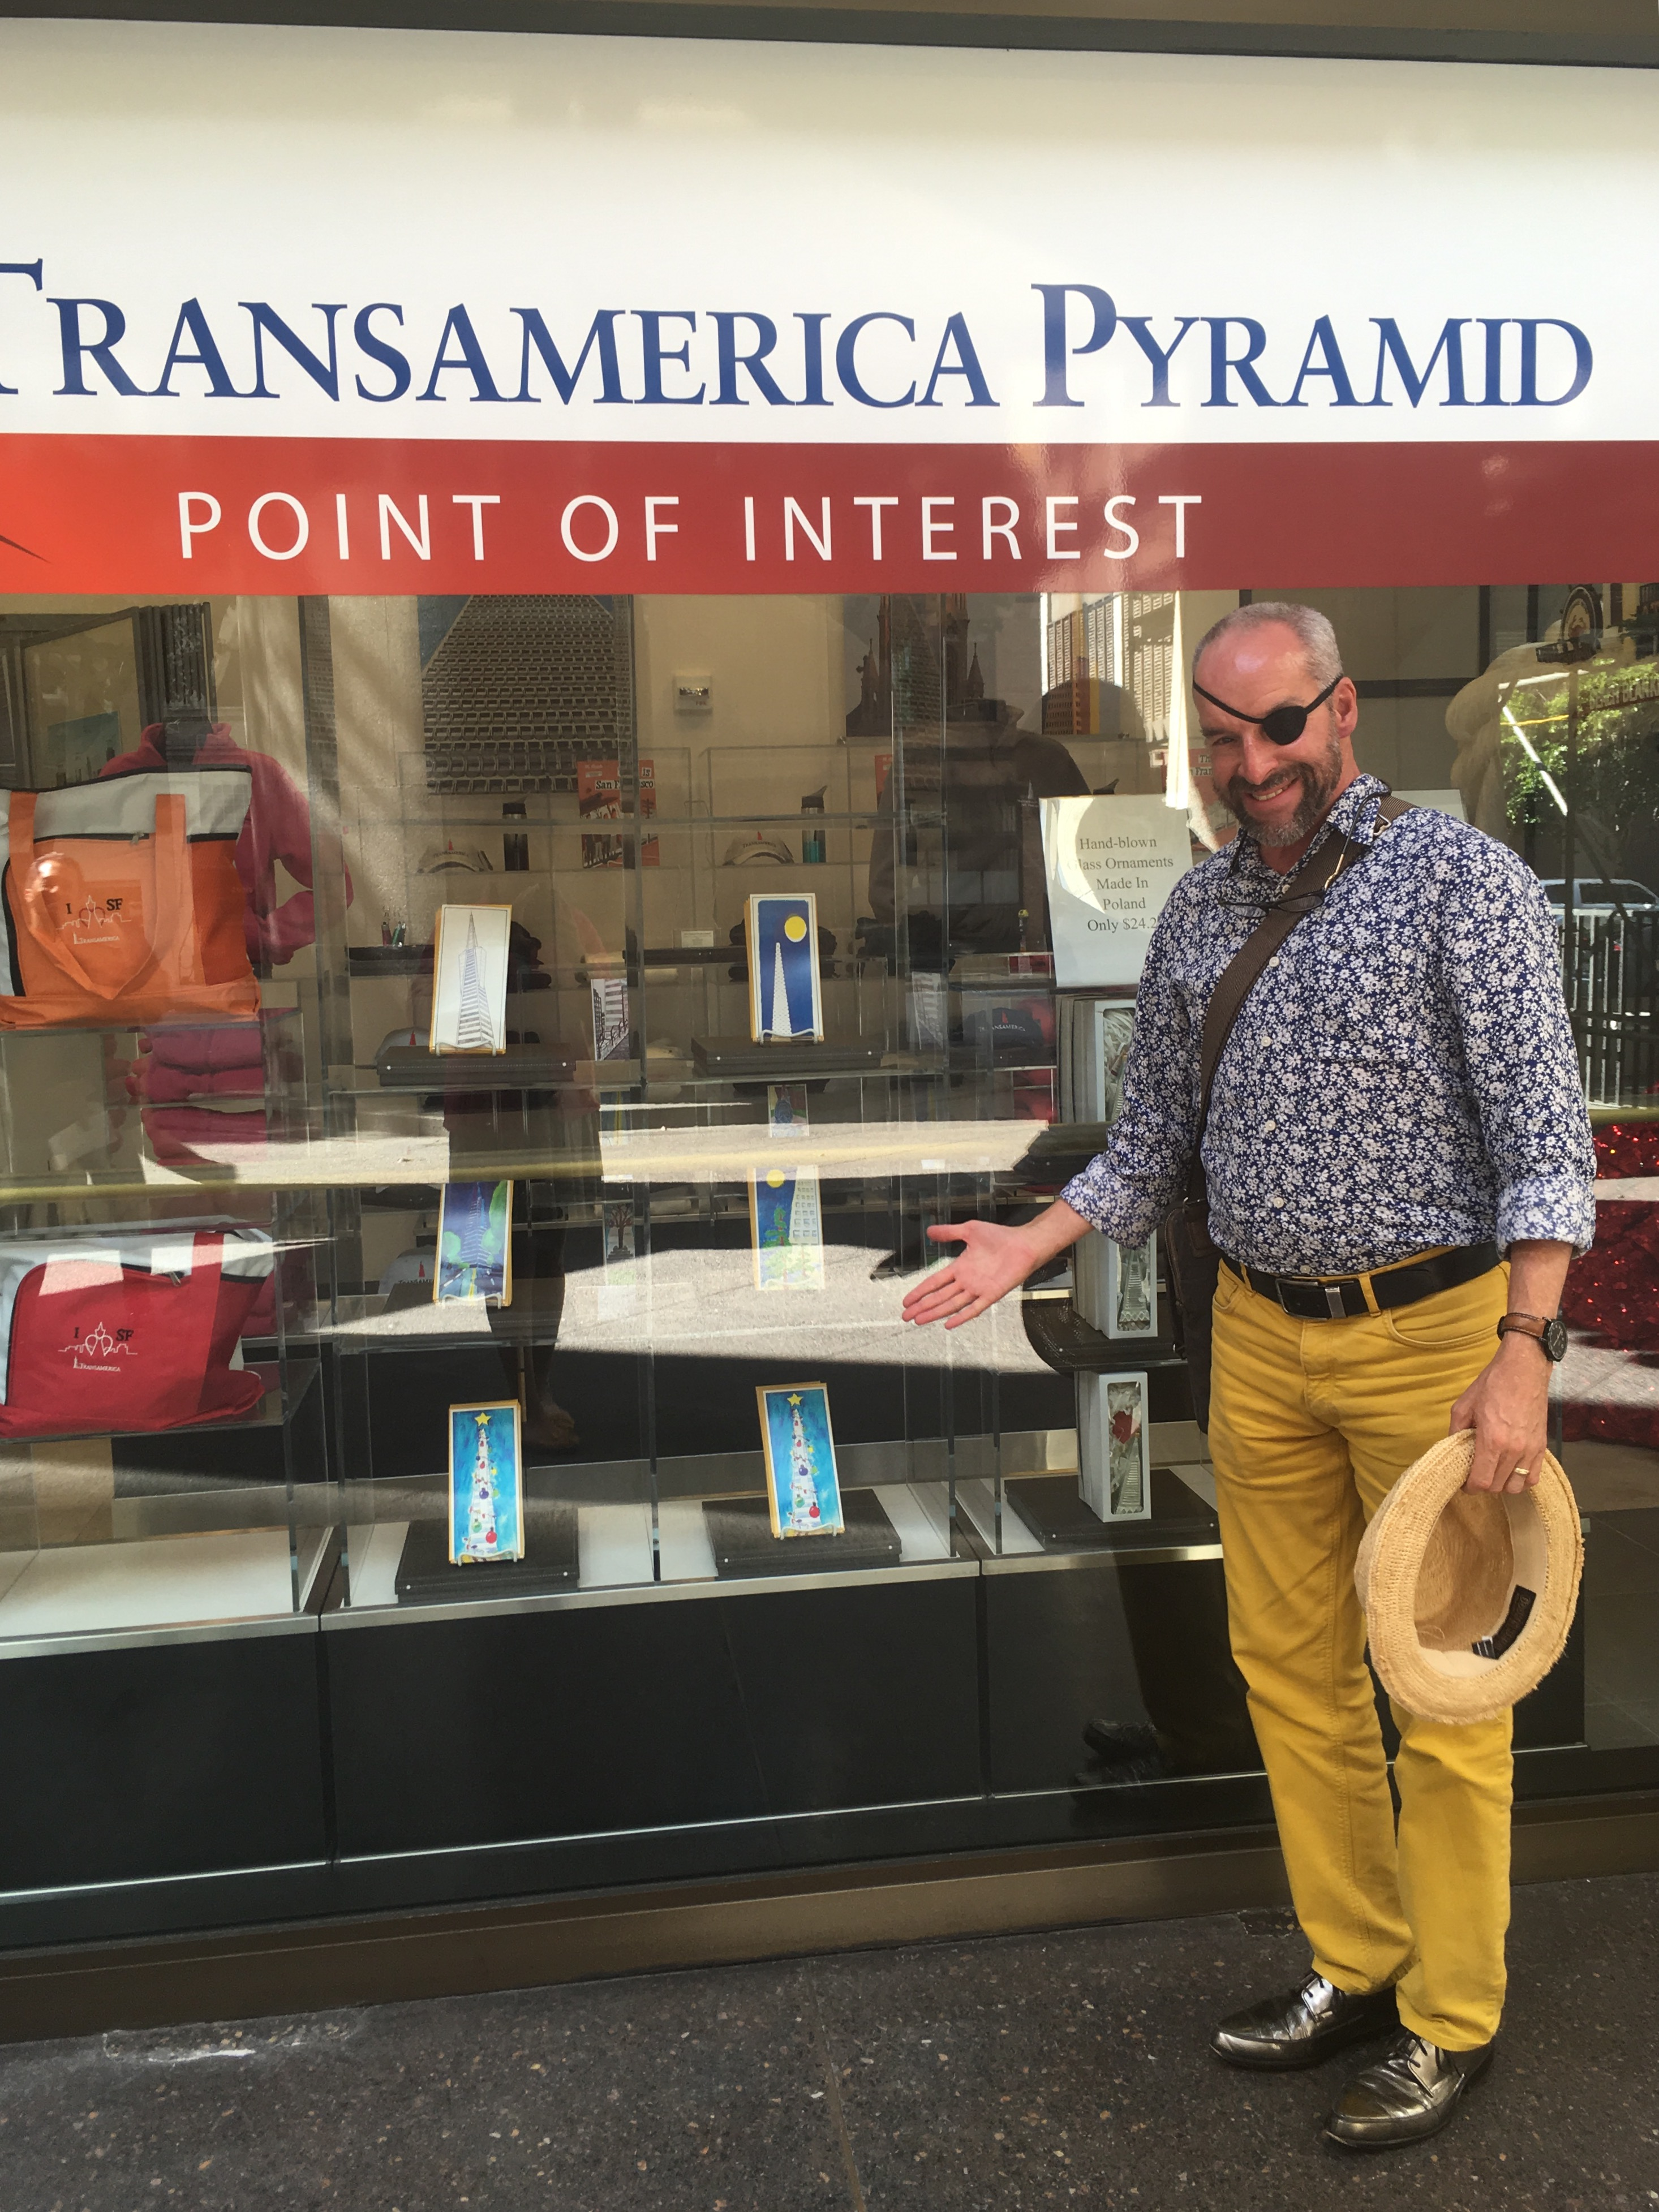 Kurt in front of storefront window at the Transamerica Pyramid - Point of Interest Gift Shop